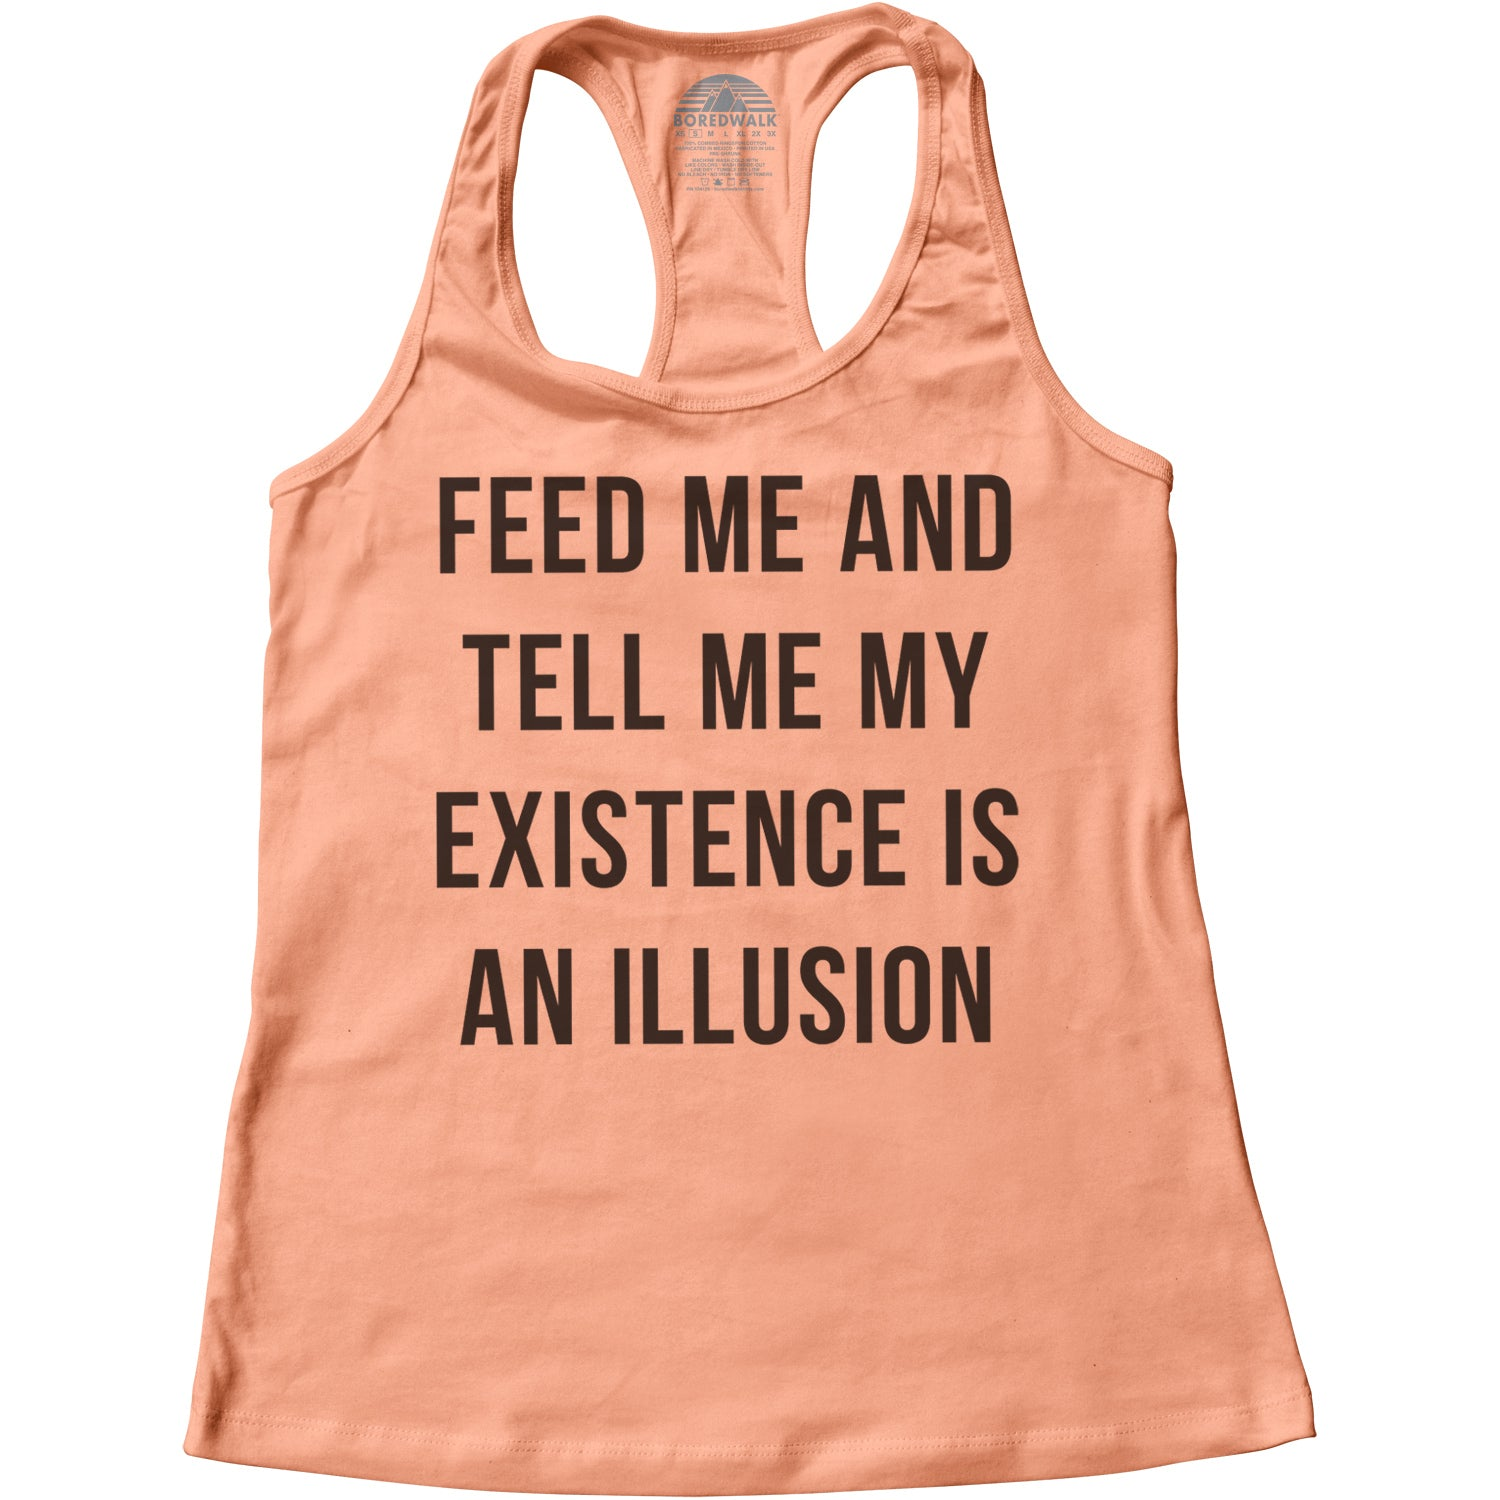 Women's Feed Me and Tell Me My Existence is an Illusion Racerback Tank Top